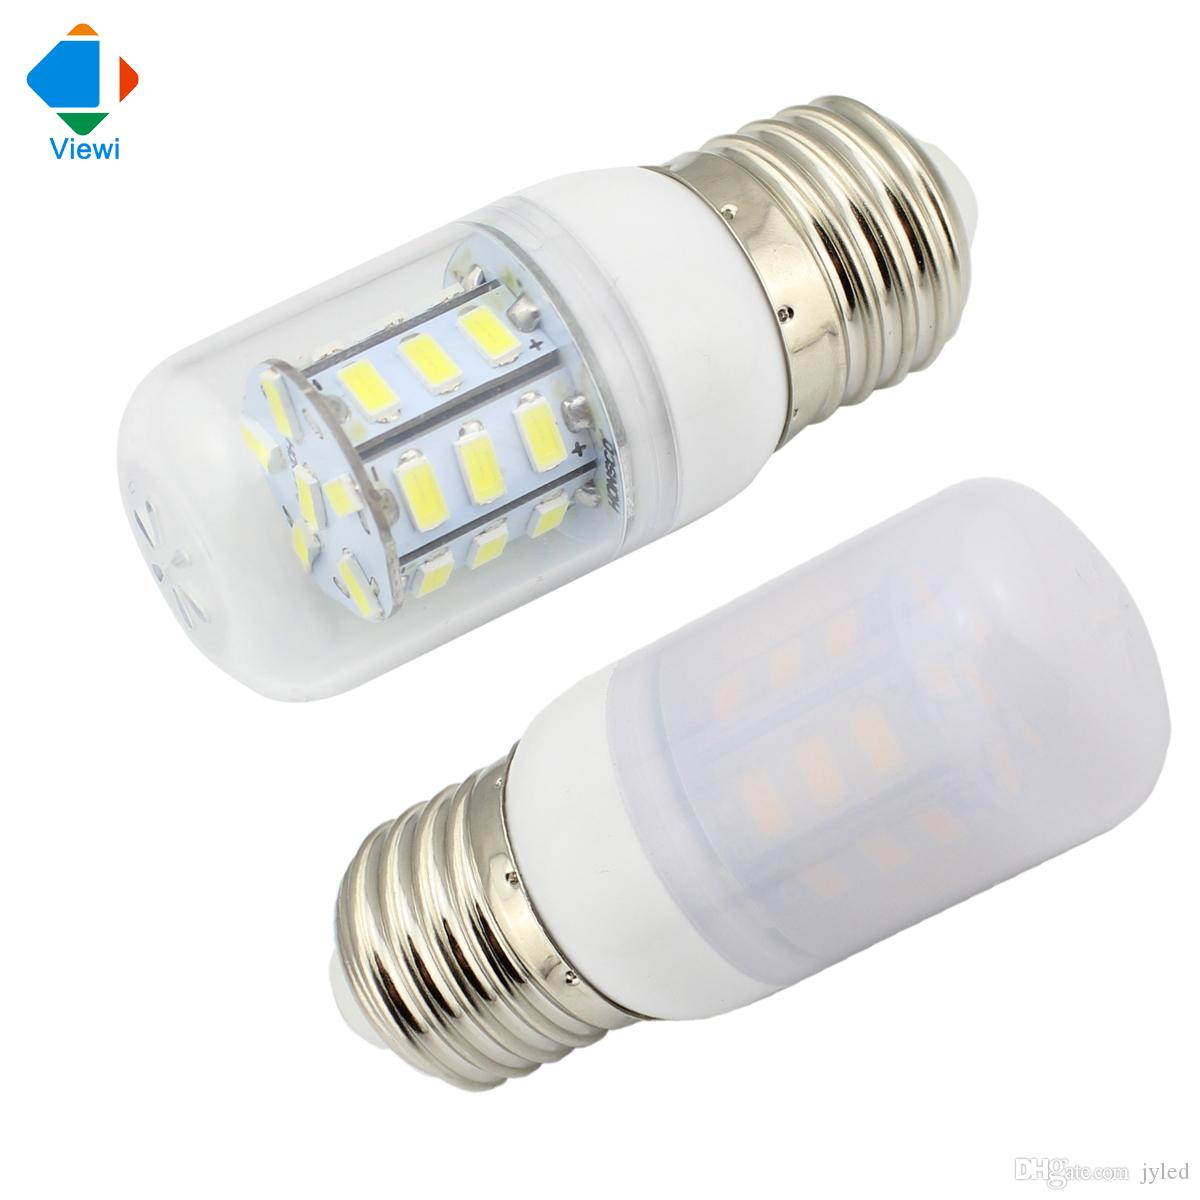 5x Lampada Led 12v Corn Bulb 24v Bulbs Light Smd 5730 27leds E27